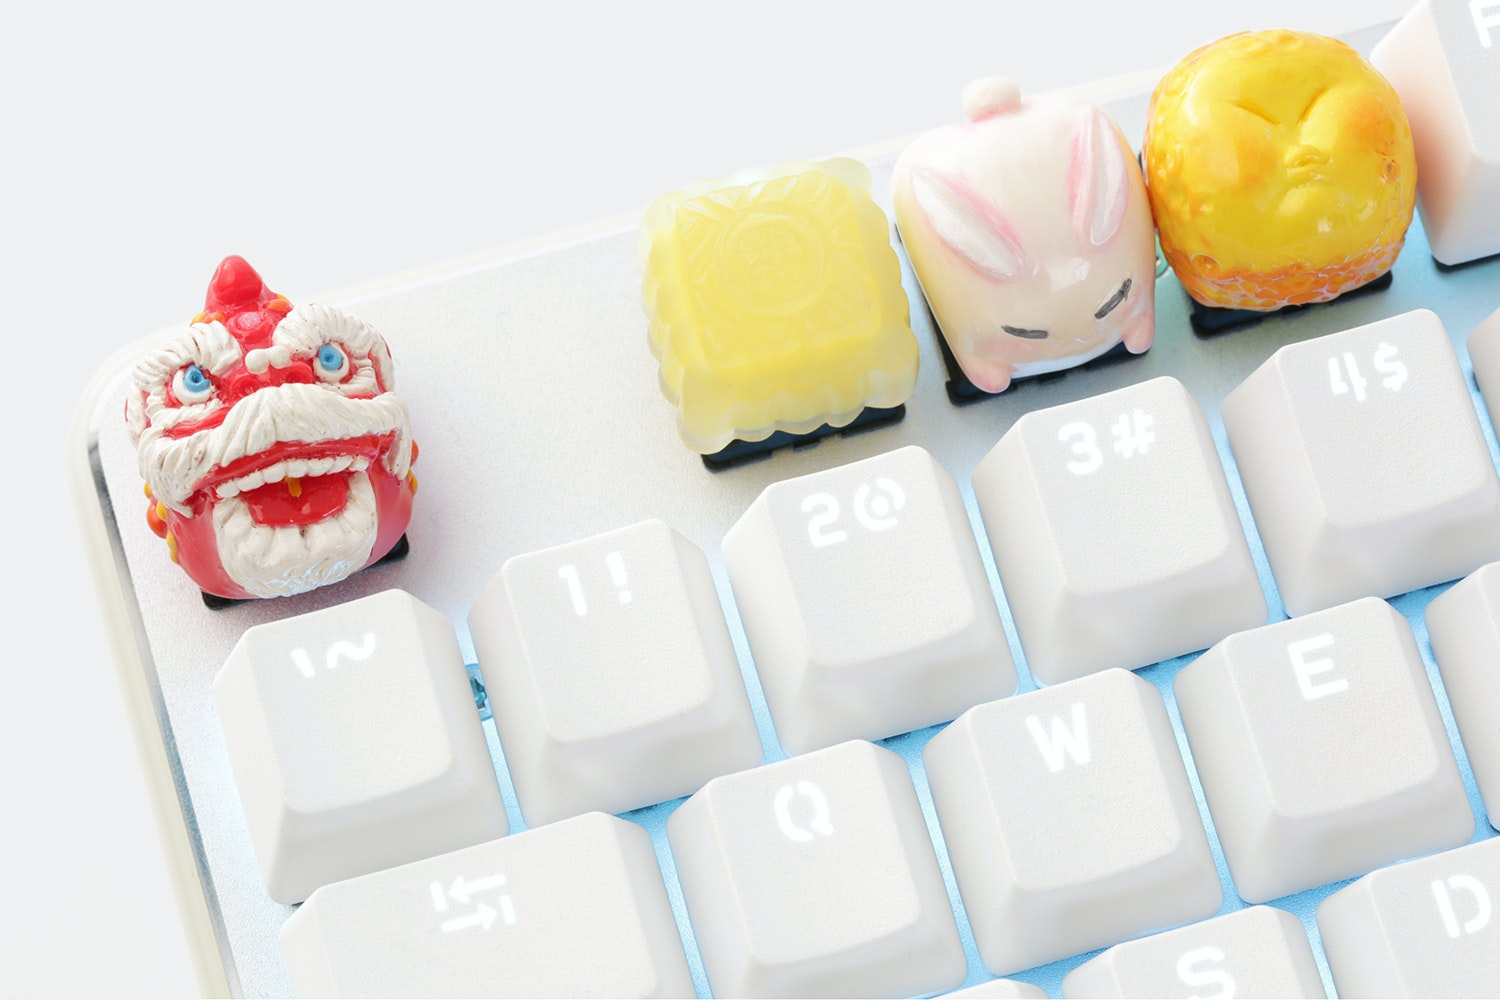 Jelly Key Autumn Festival Artisan Keycap